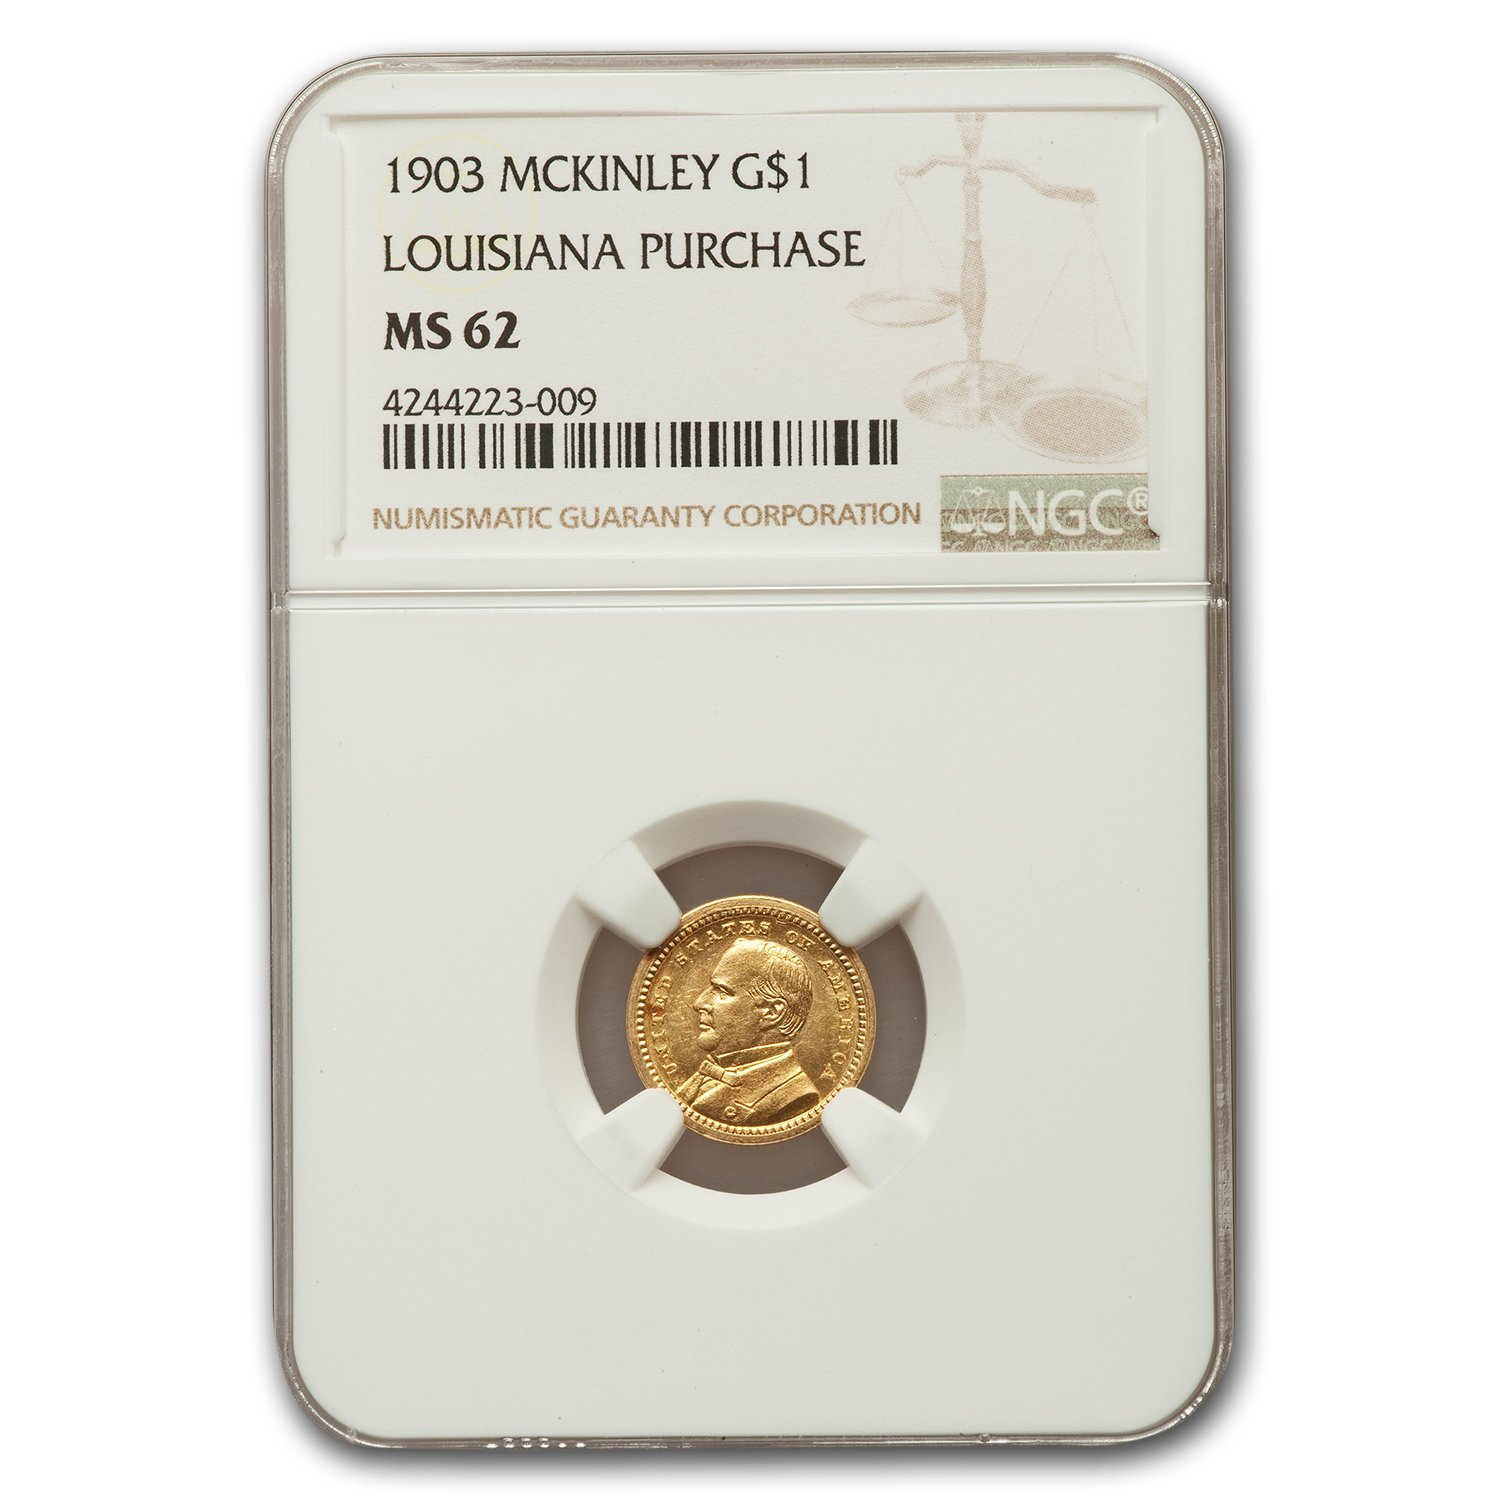 1903 $1.00 Gold Louisiana Purchase McKinley MS-62 NGC